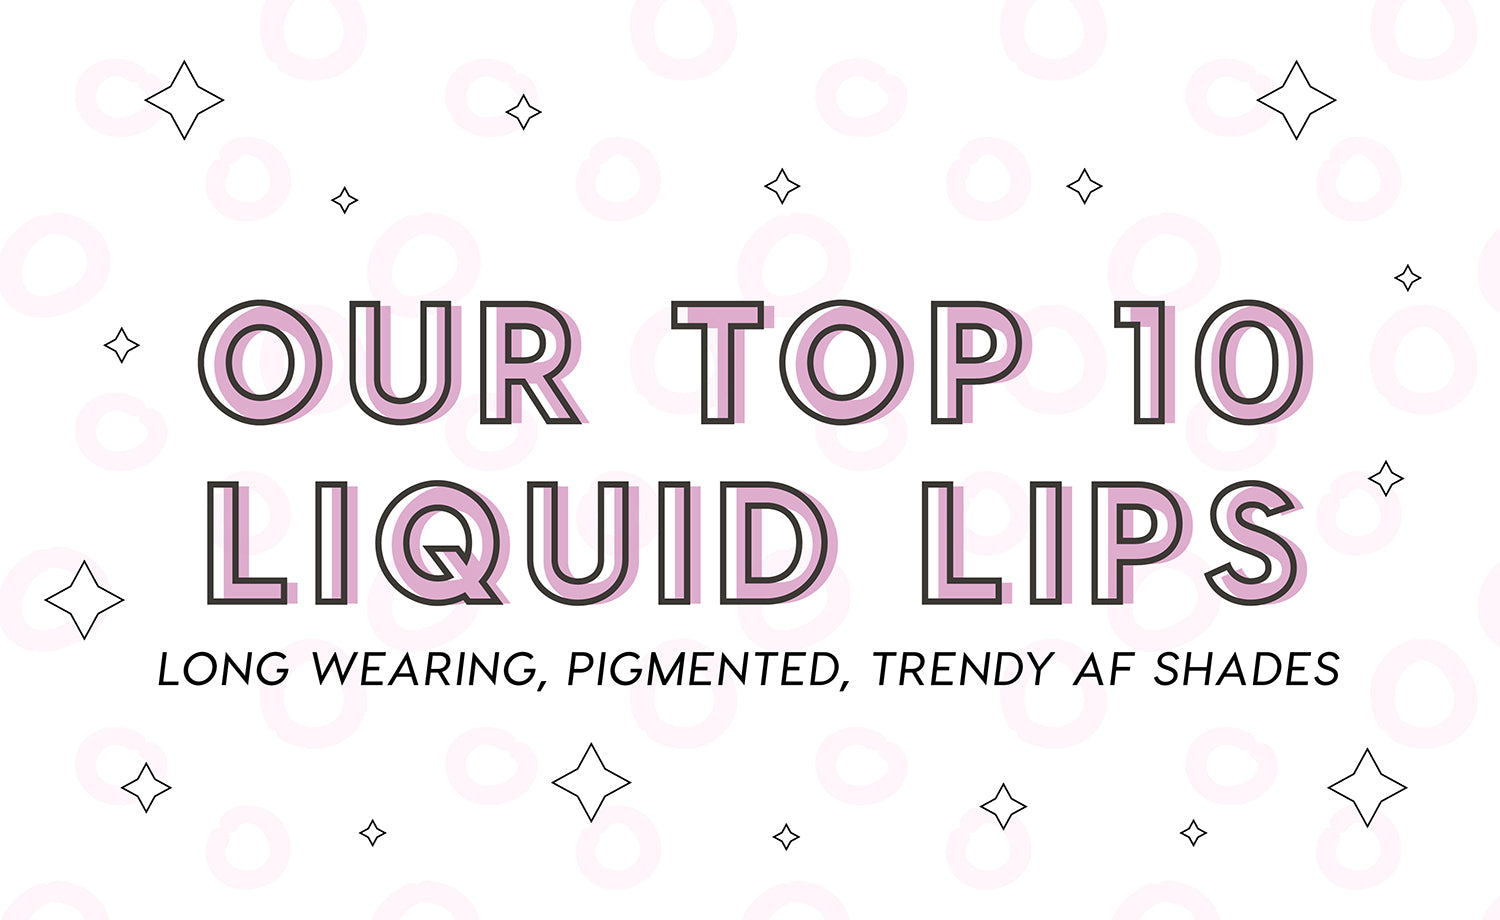 Our Top 10 Liquid Lips